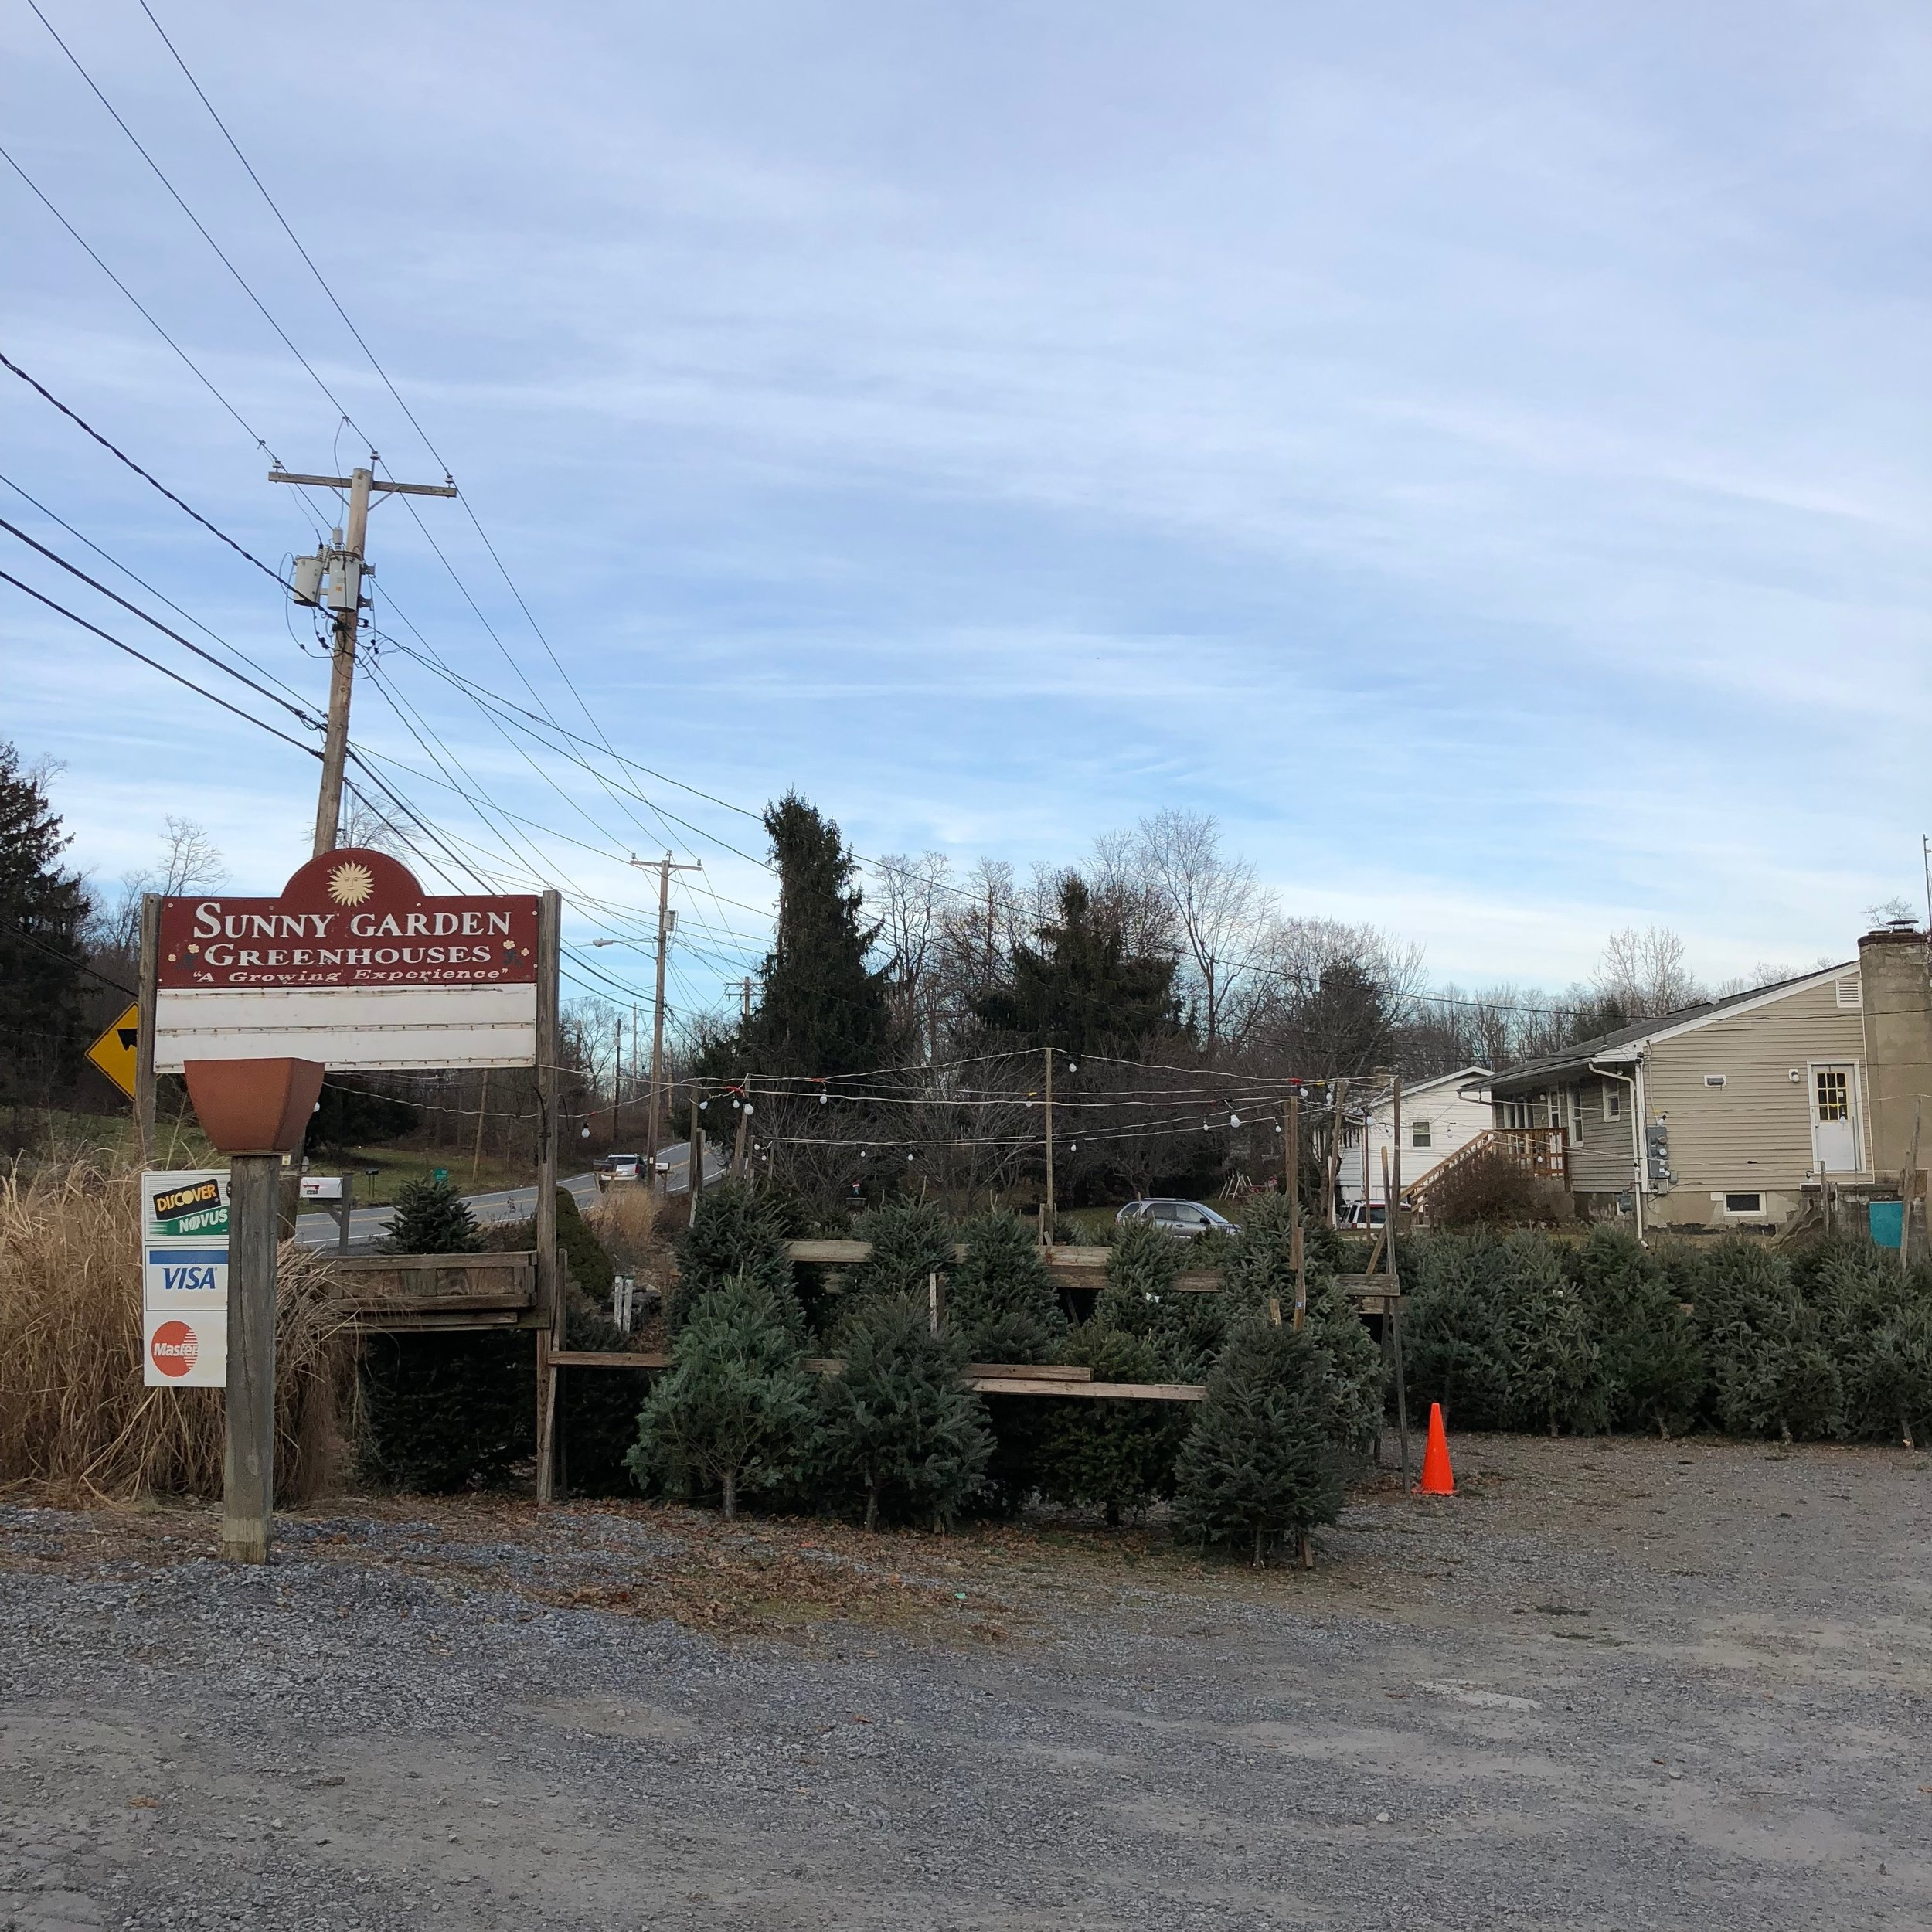 sunny gardens christmas trees in lot no snow.JPG